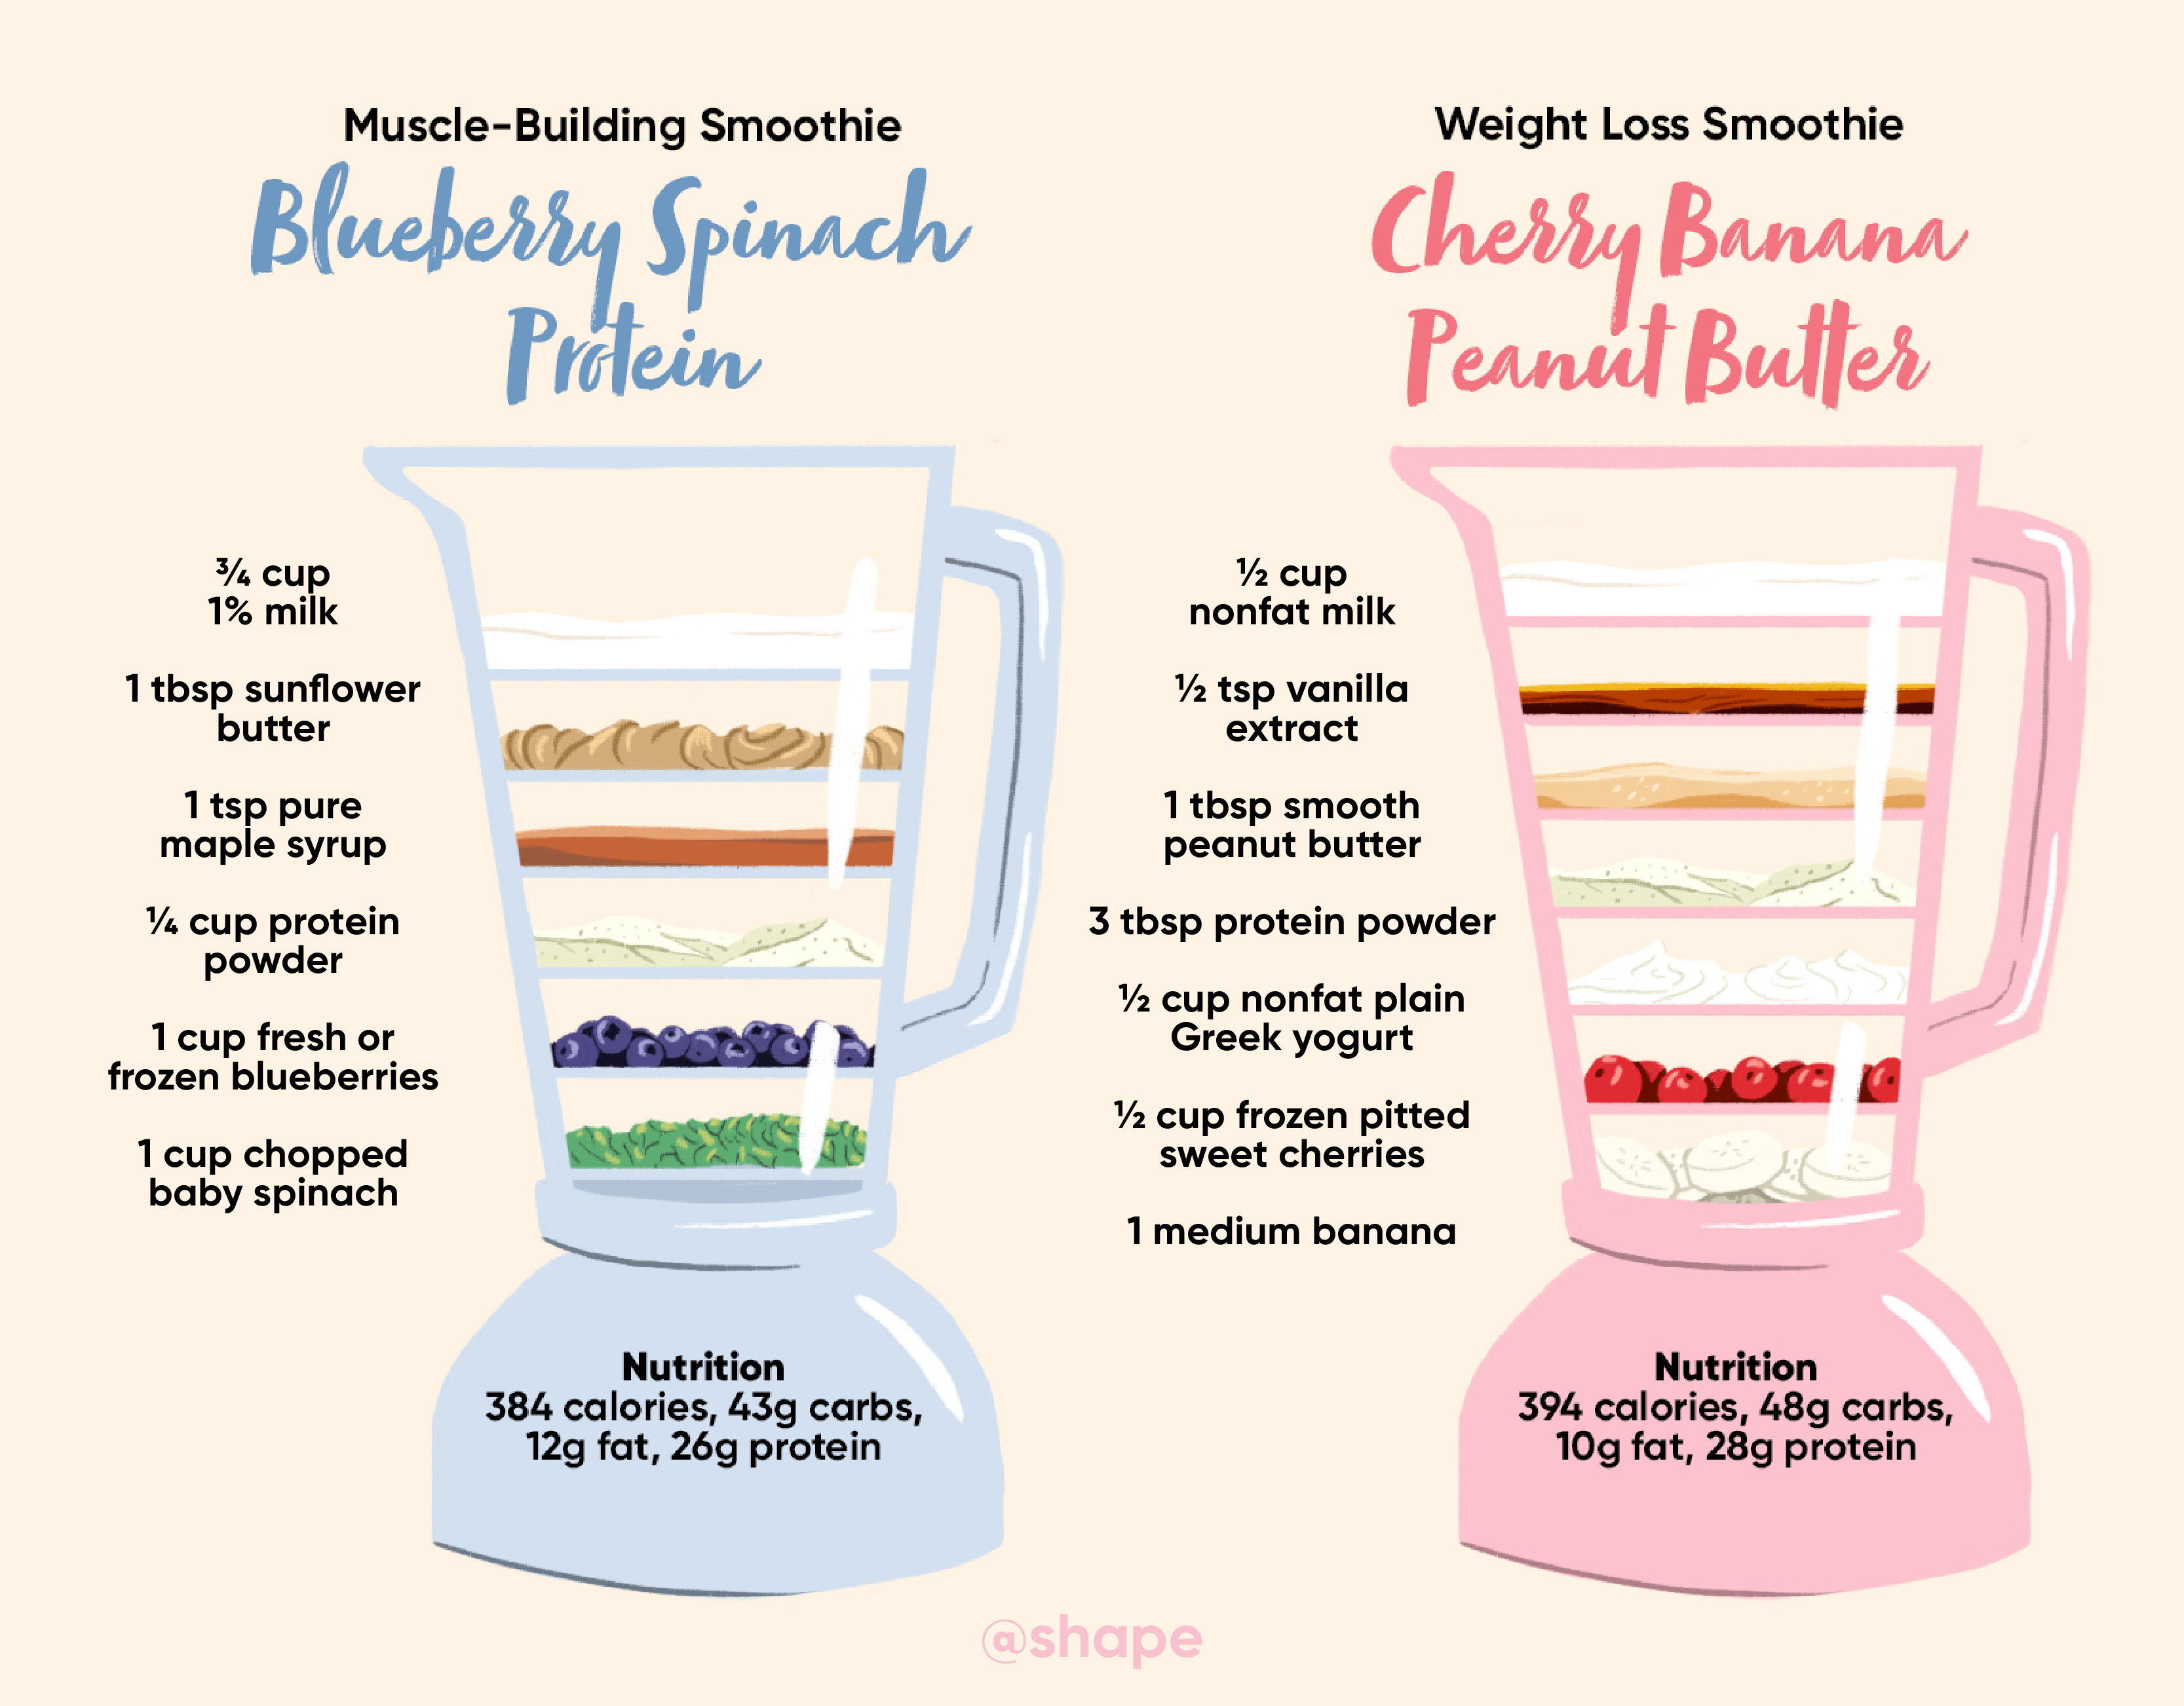 The Difference Between A Muscle Building Smoothie And Weight Loss Smoothie Shape